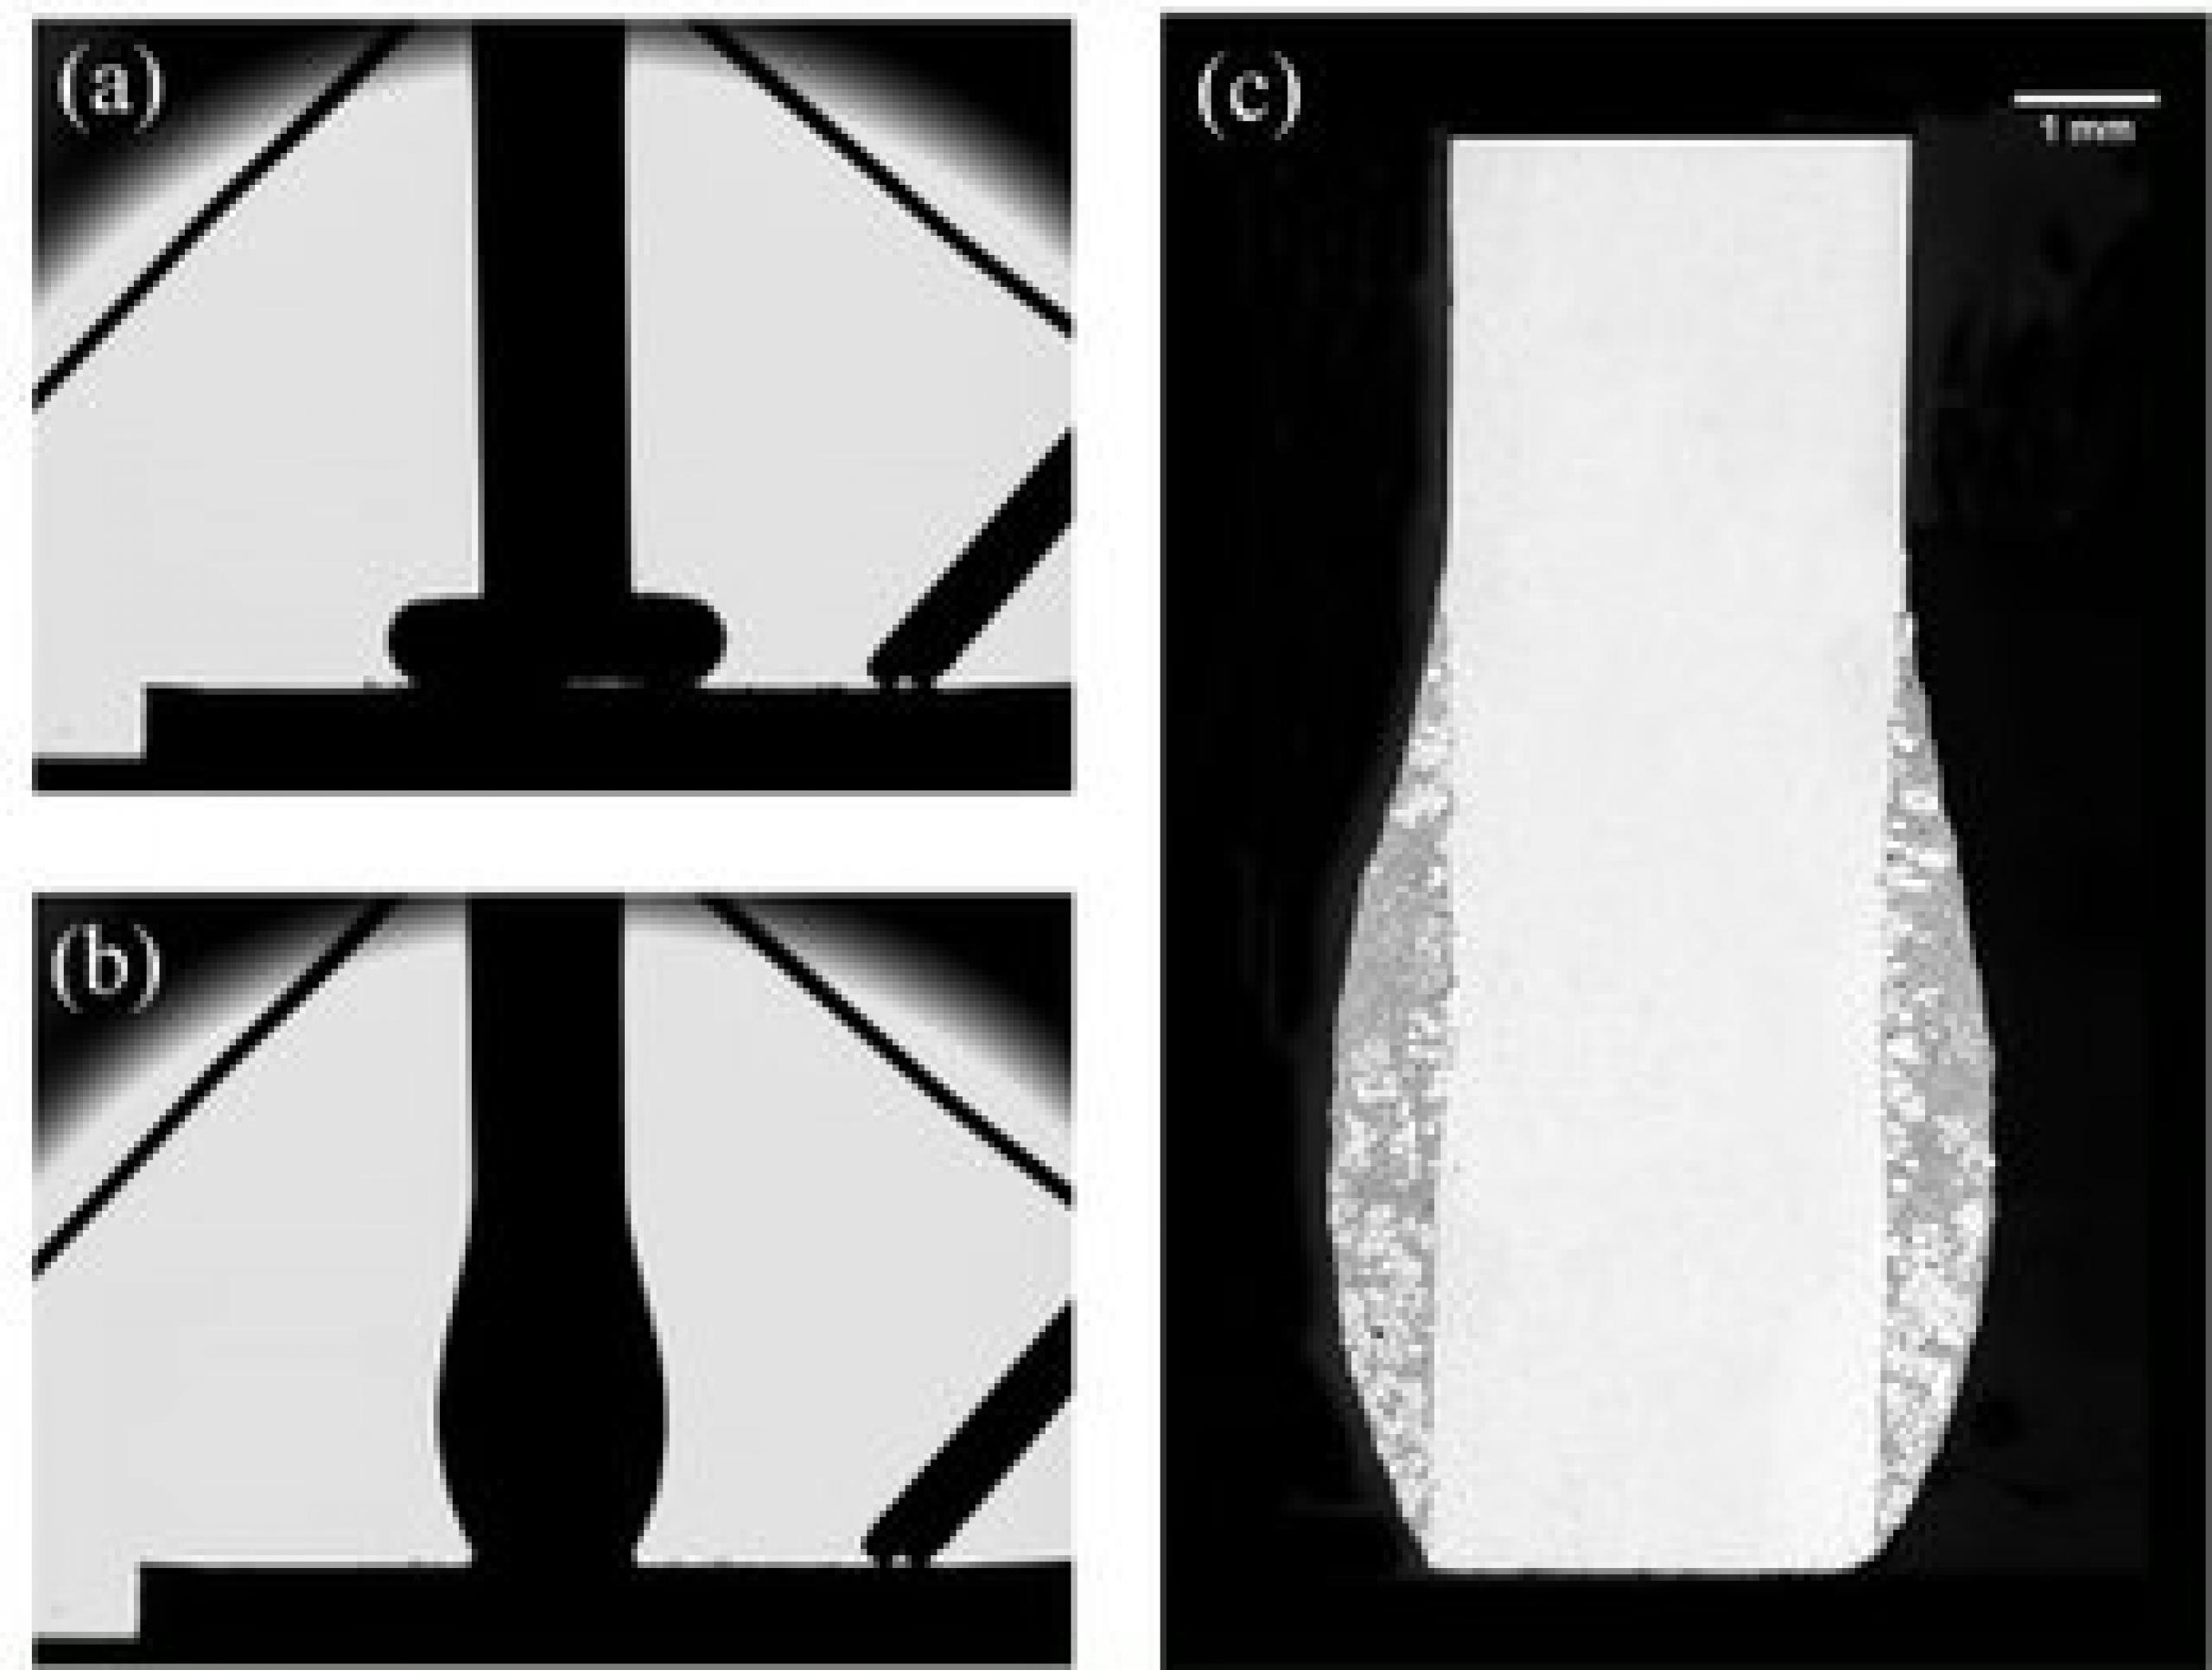 Black and white image of molten composite alloy